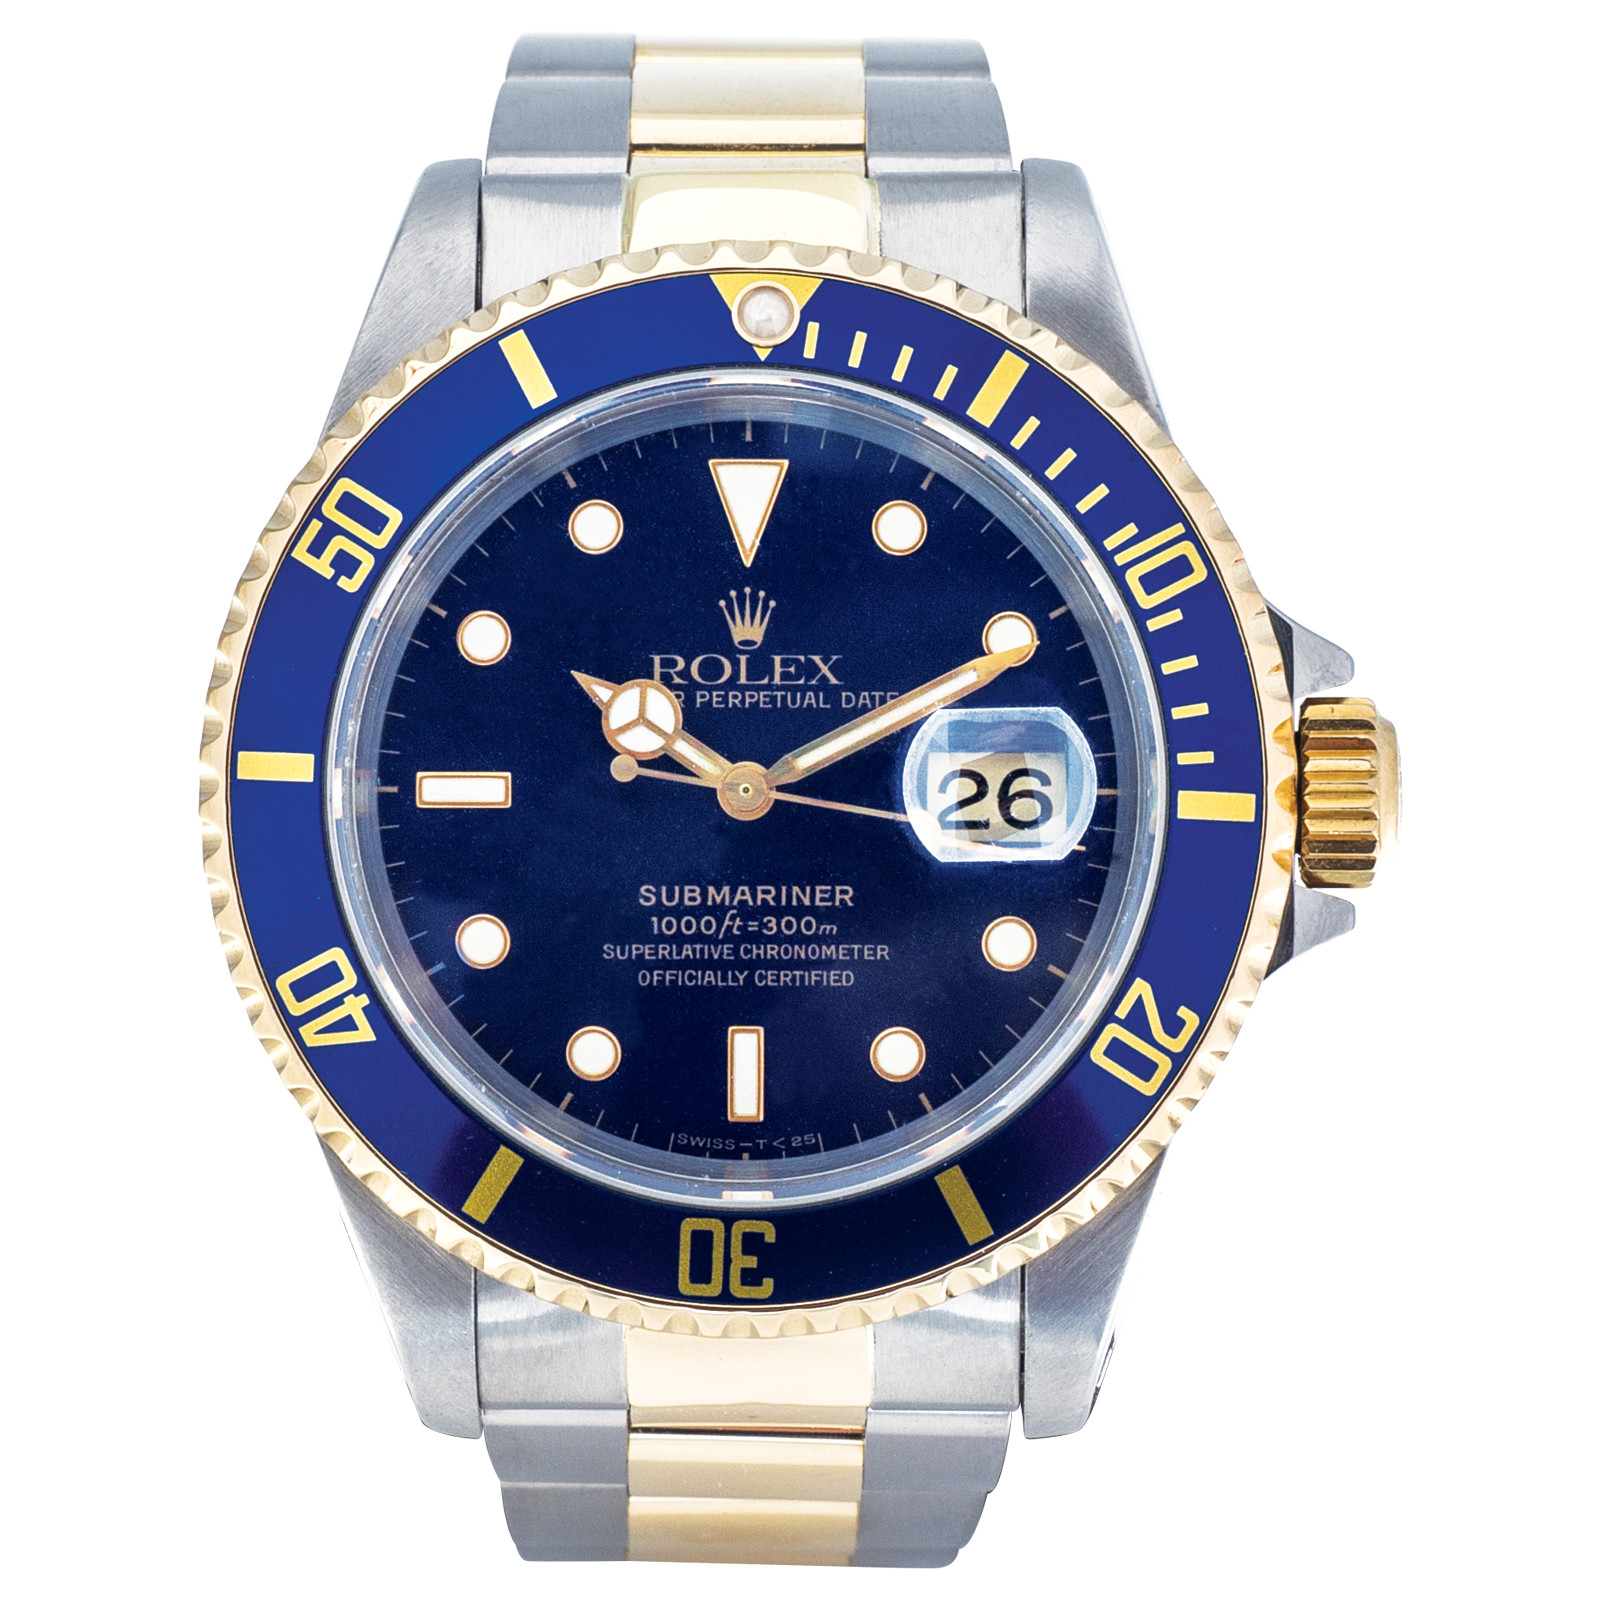 Owned Rolex Submariner Date Watch – Jewelry Buyer Jobs